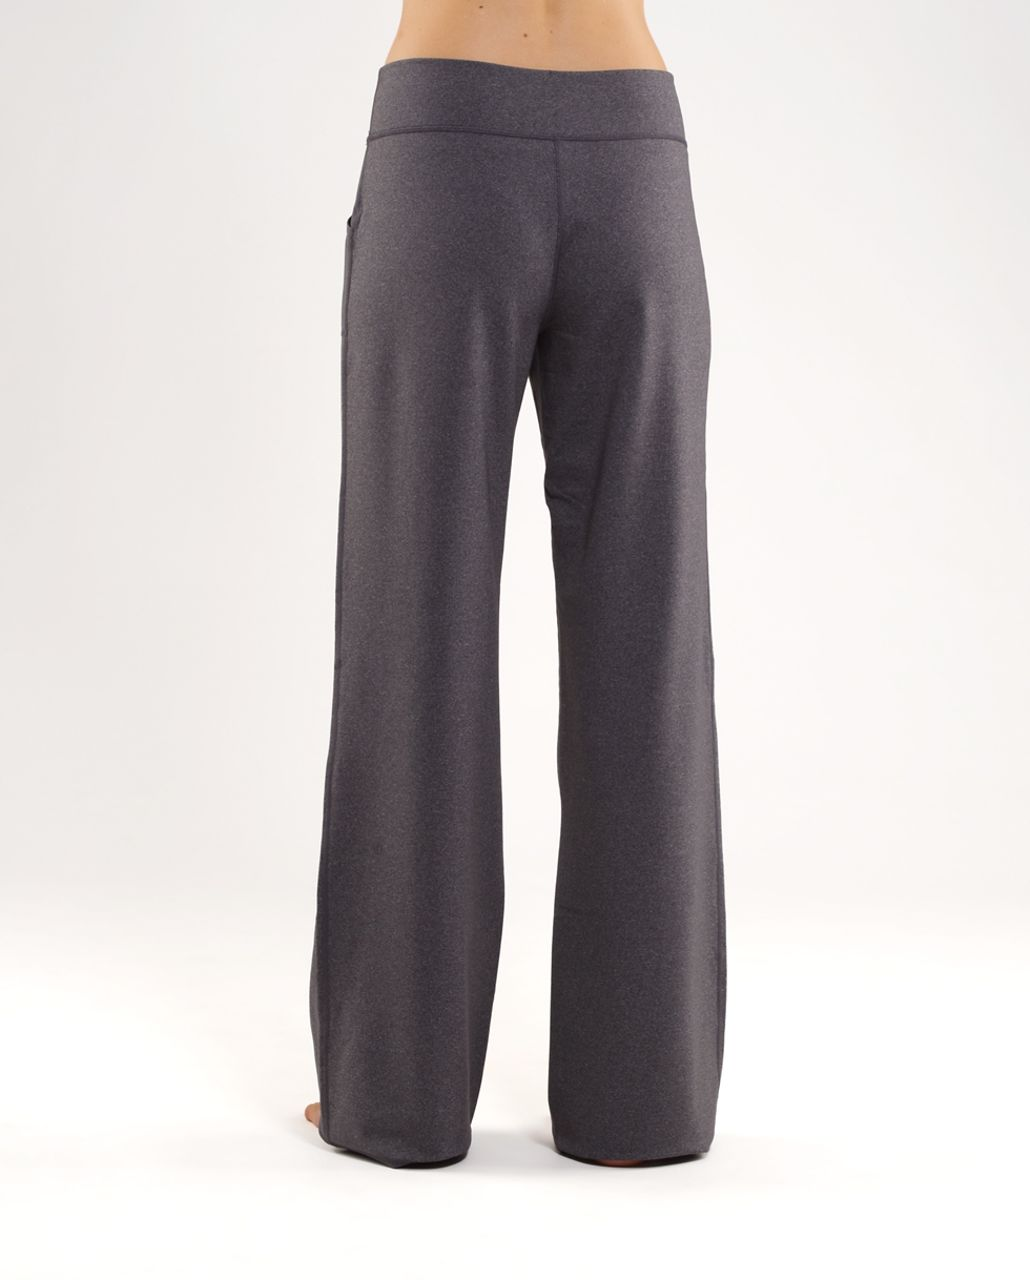 lululemon still pant regular heathered coal lulu fanatics